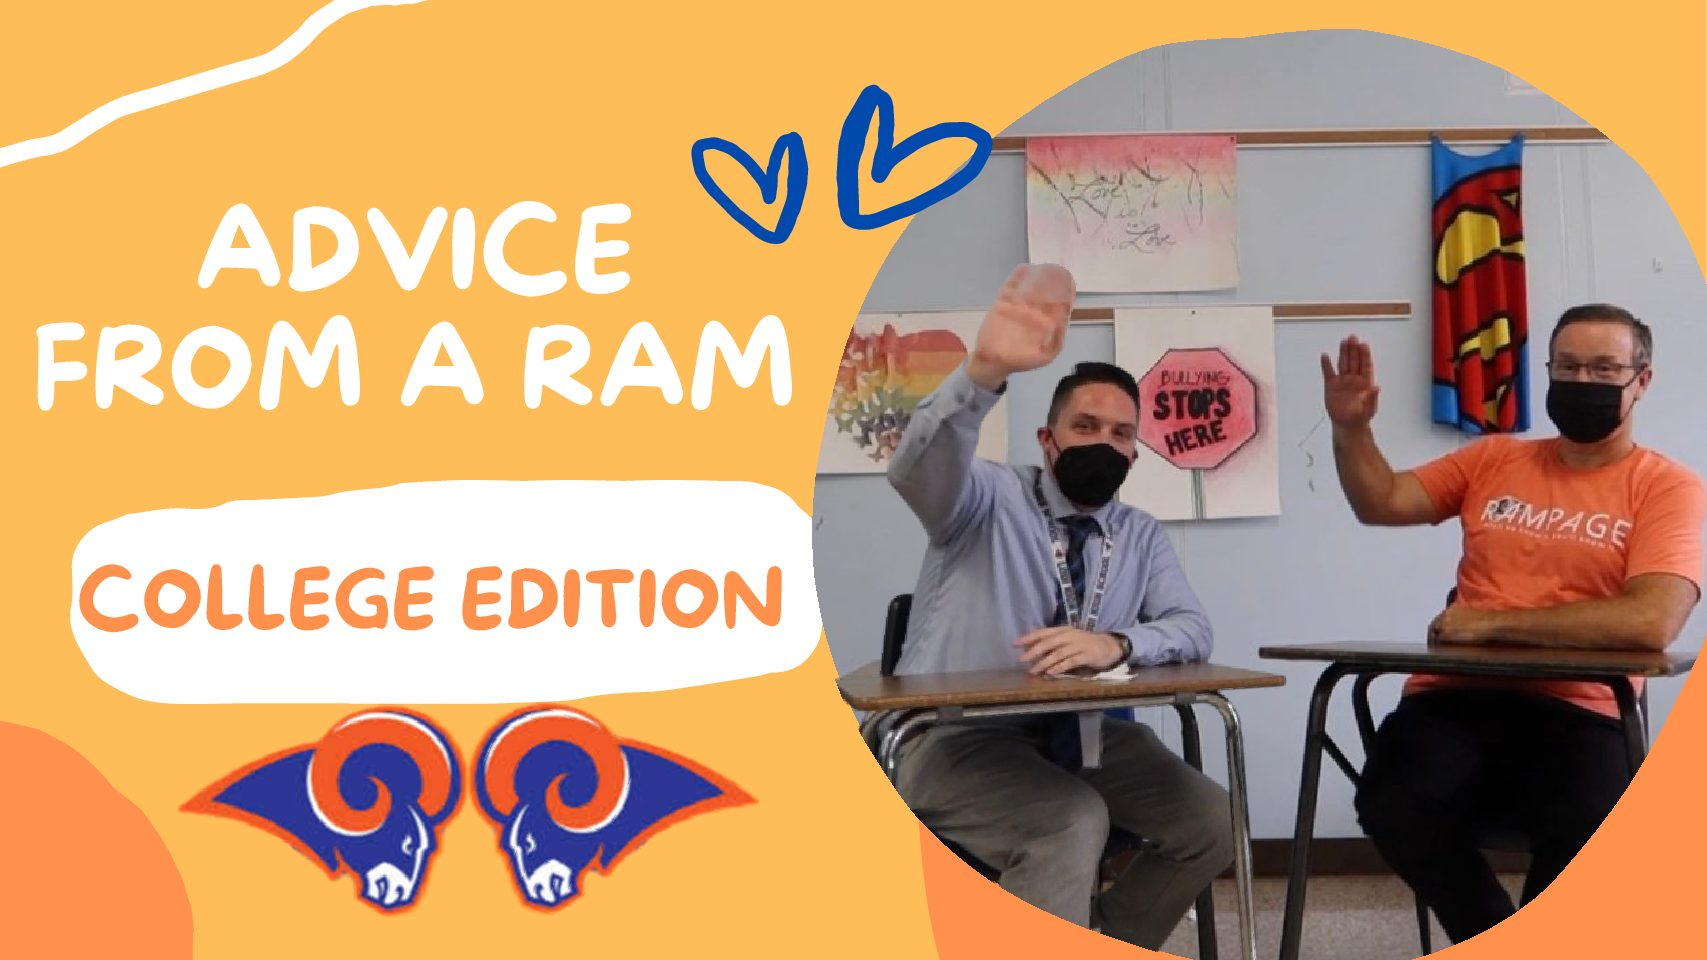 Advice from a Ram: College Edition